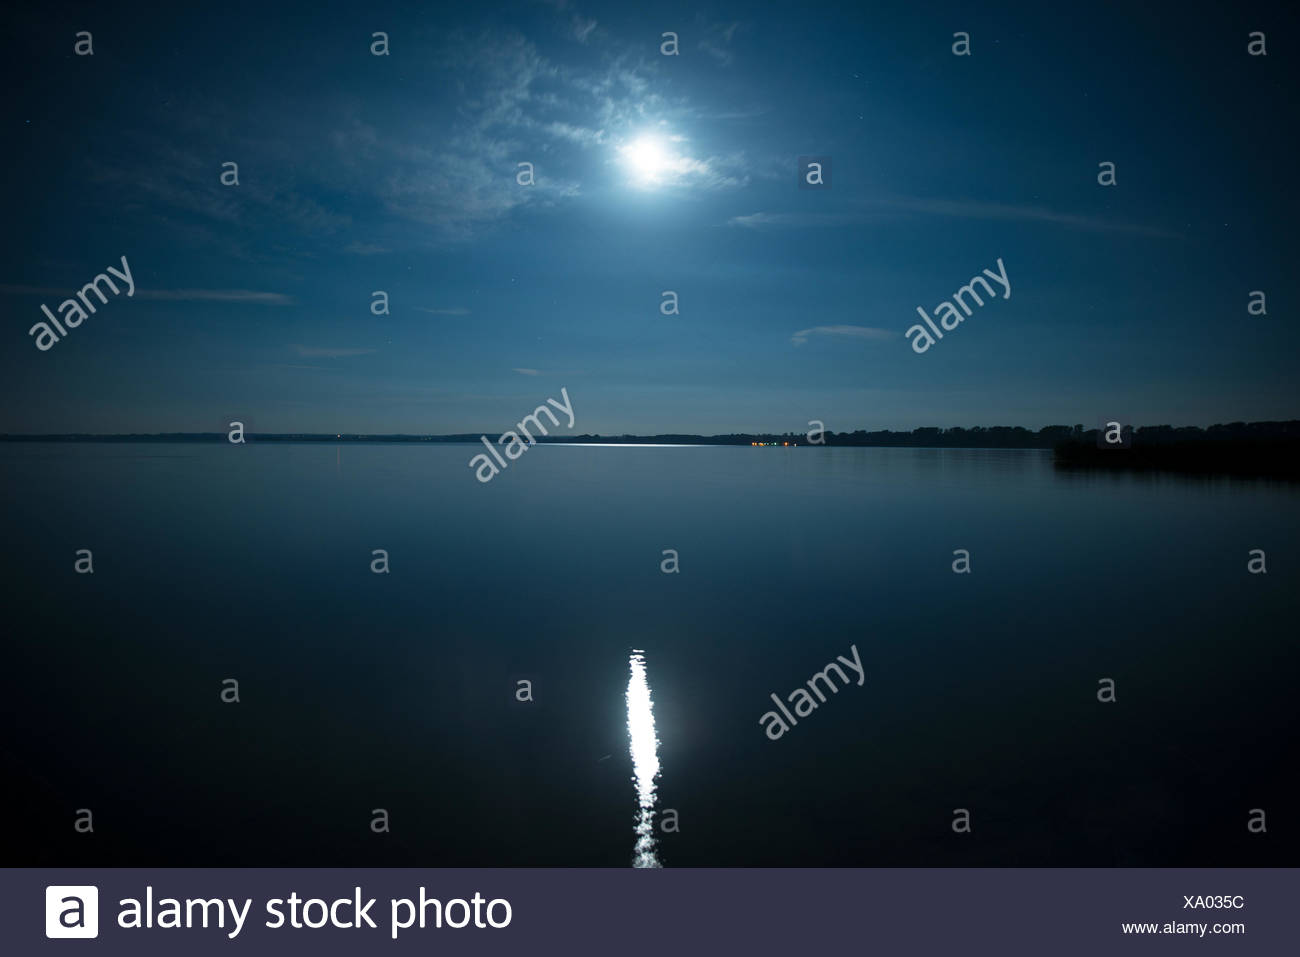 Full moon reflected in the water - Stock Image